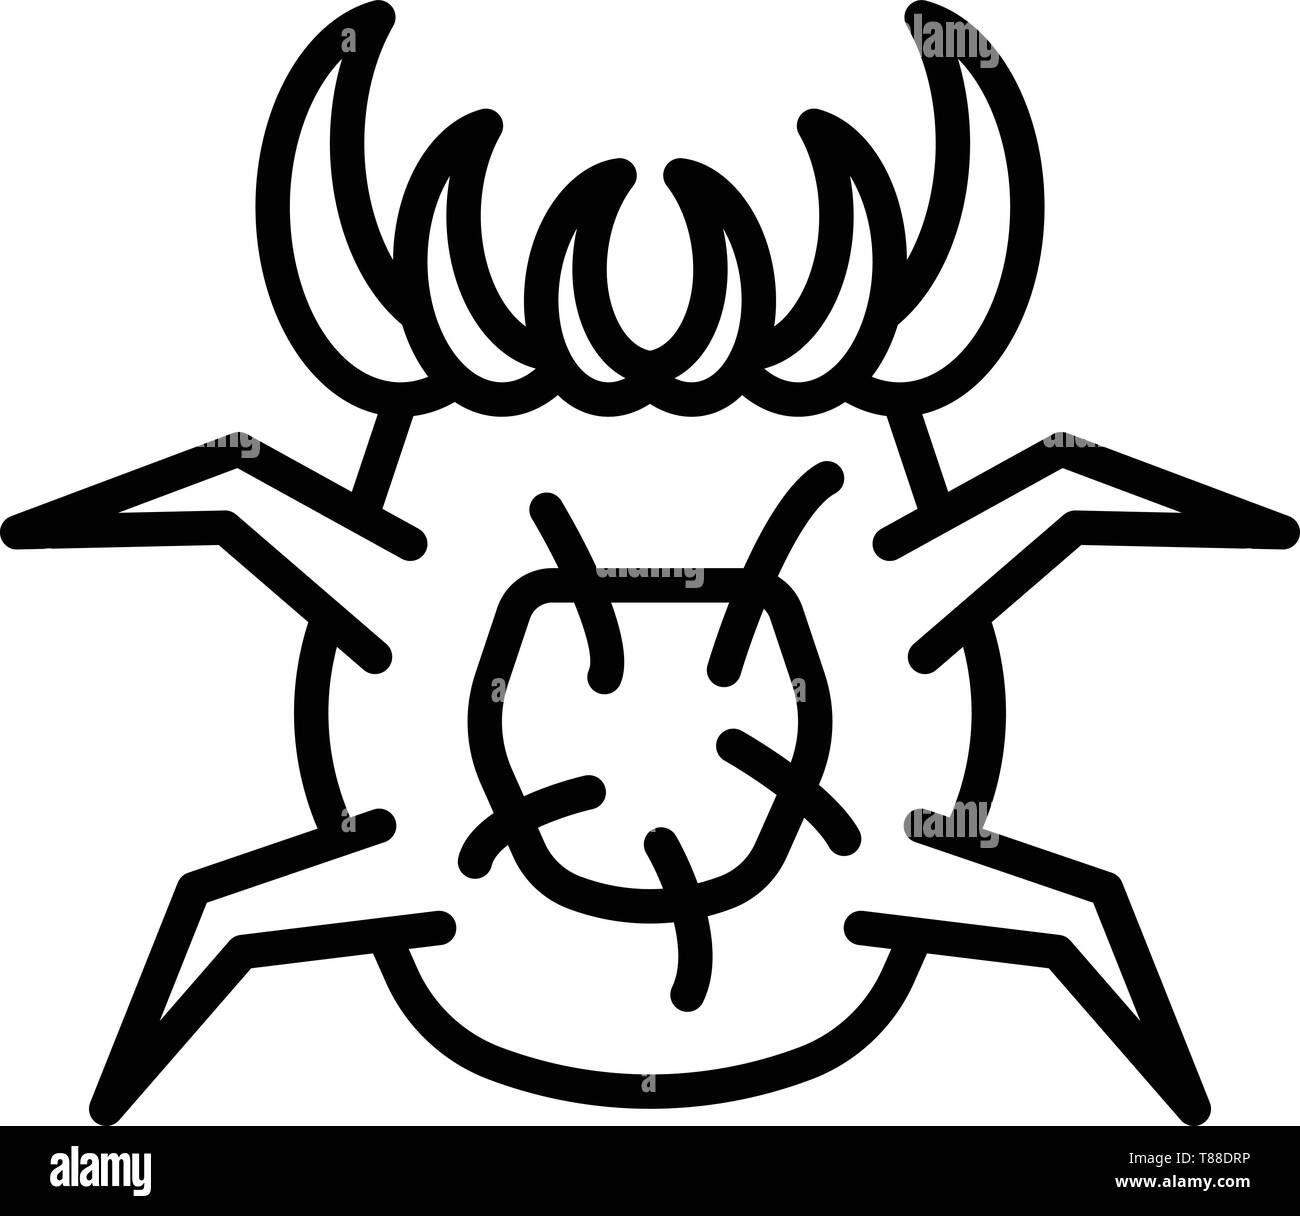 Dust mite icon, outline style - Stock Image